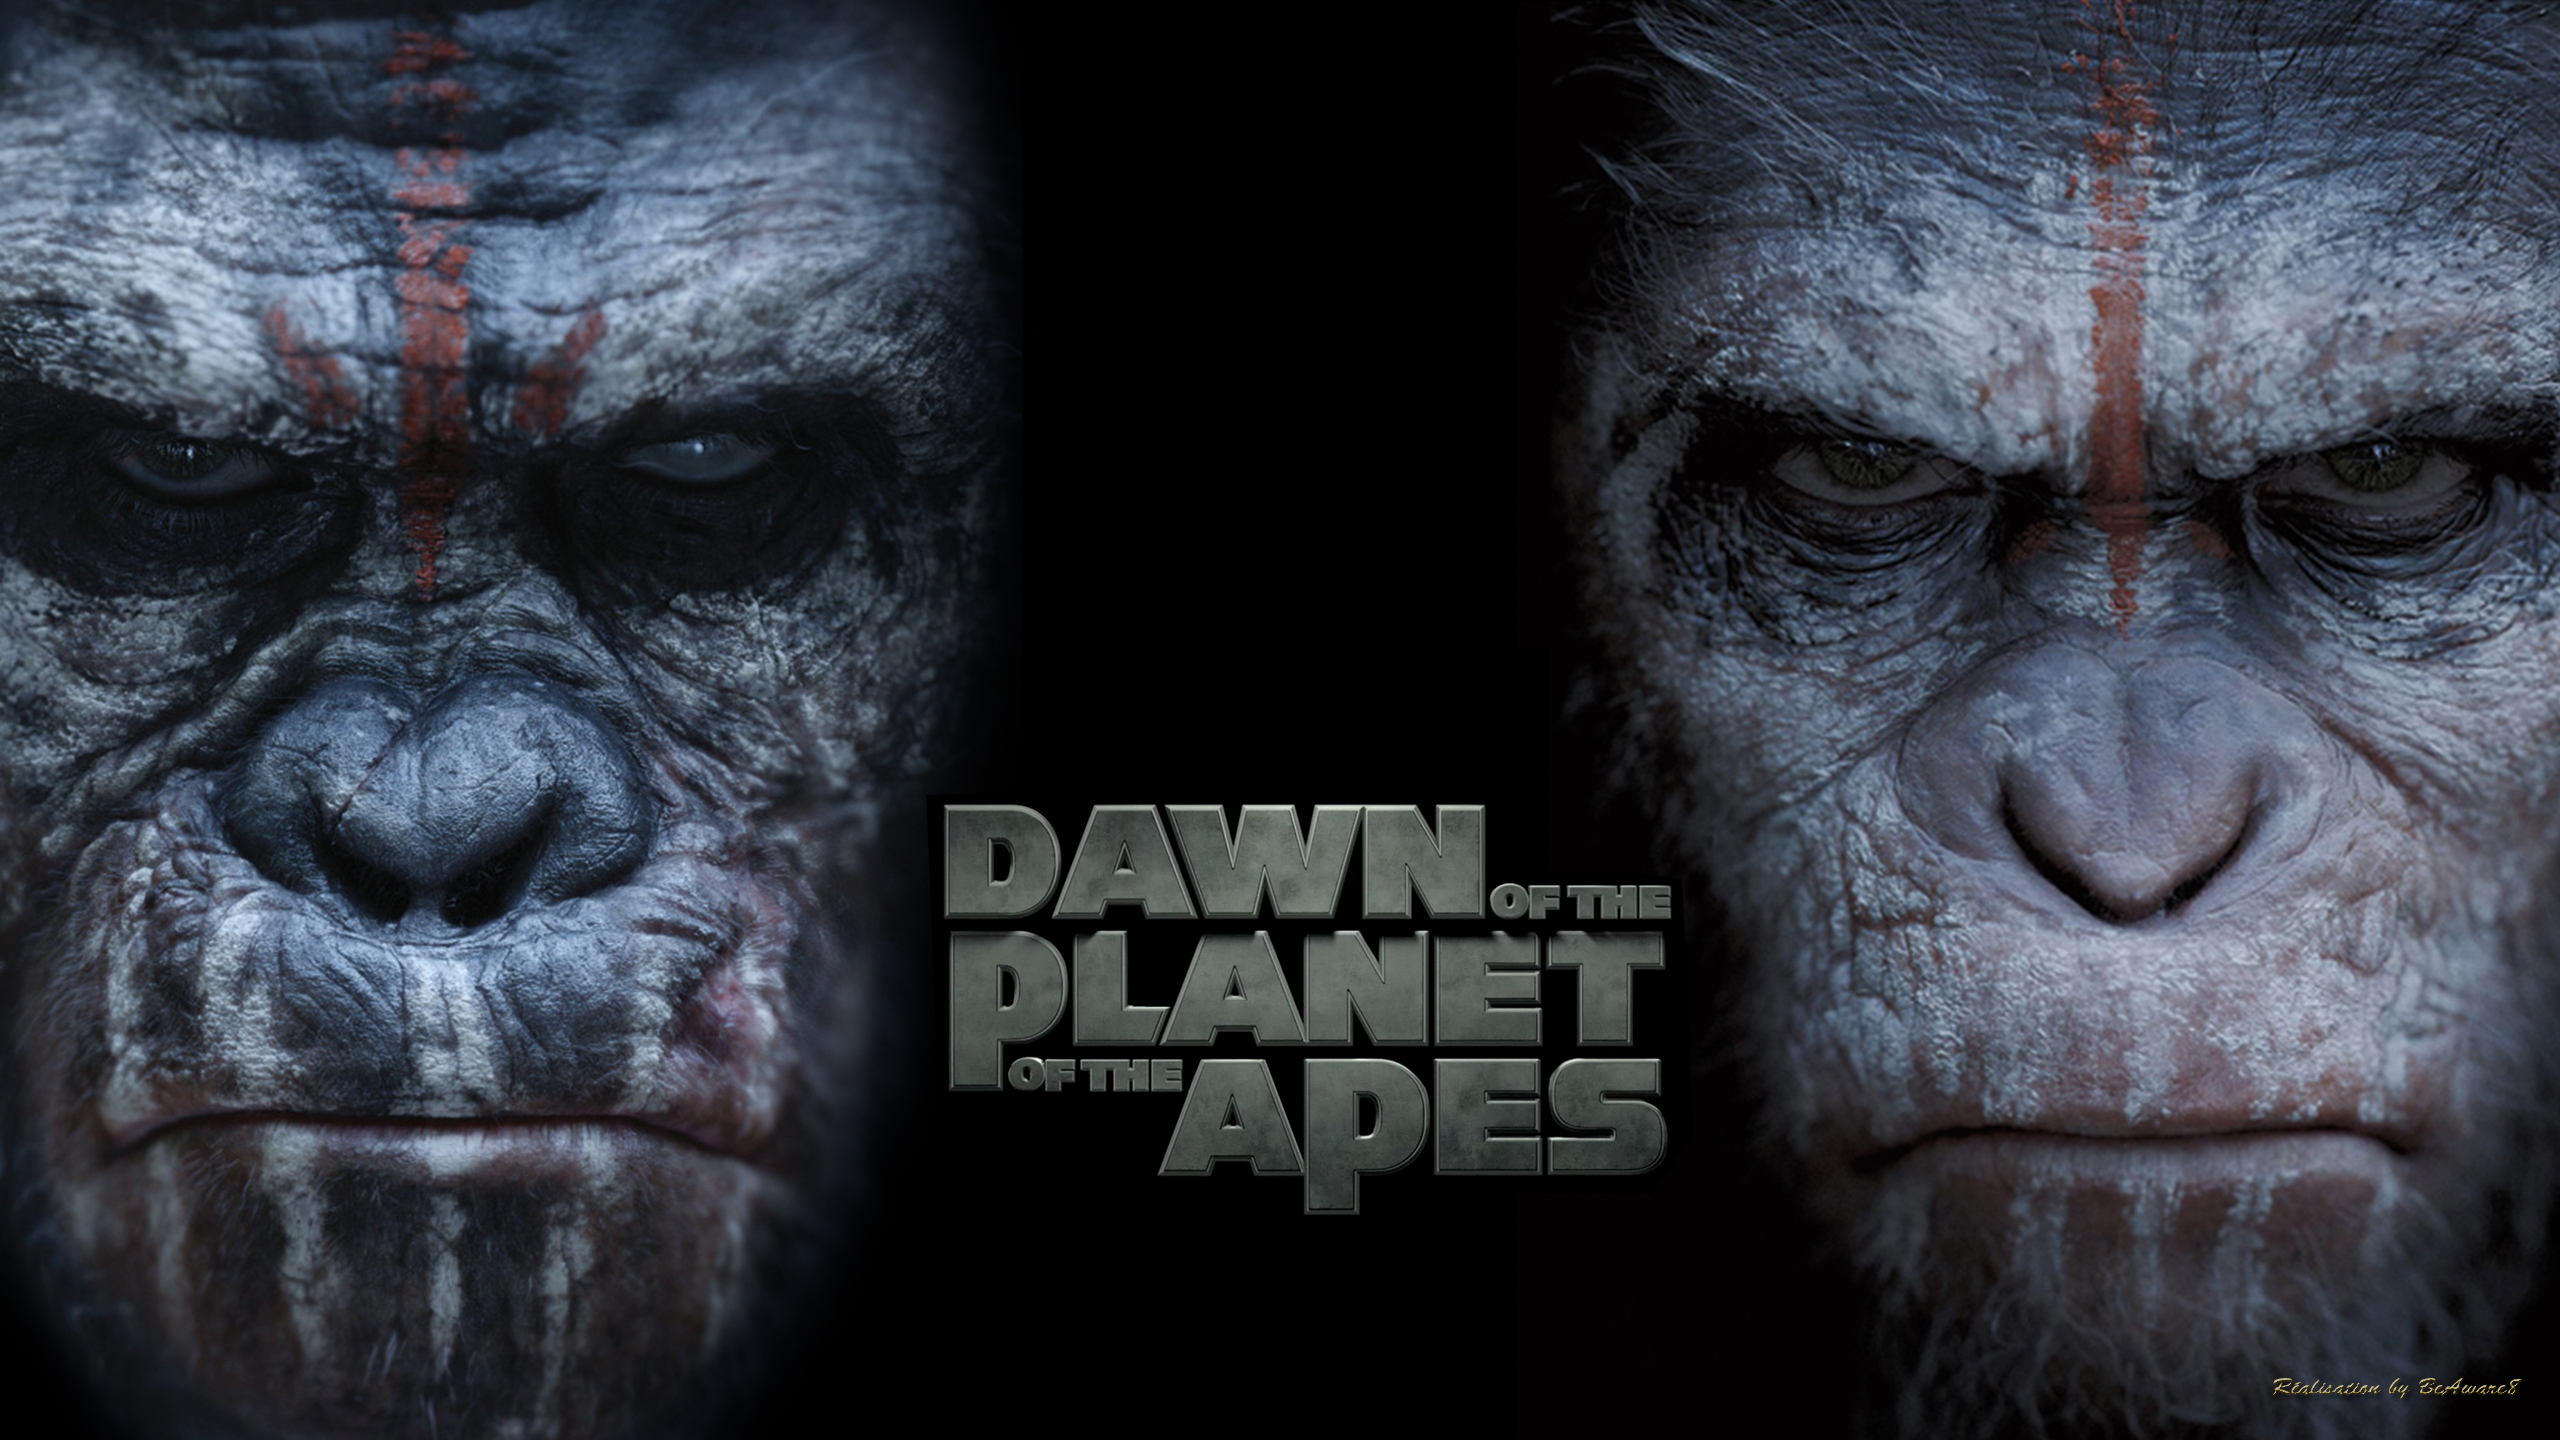 Dawn of the Planet of the Apes by BeAware8 on DeviantArt